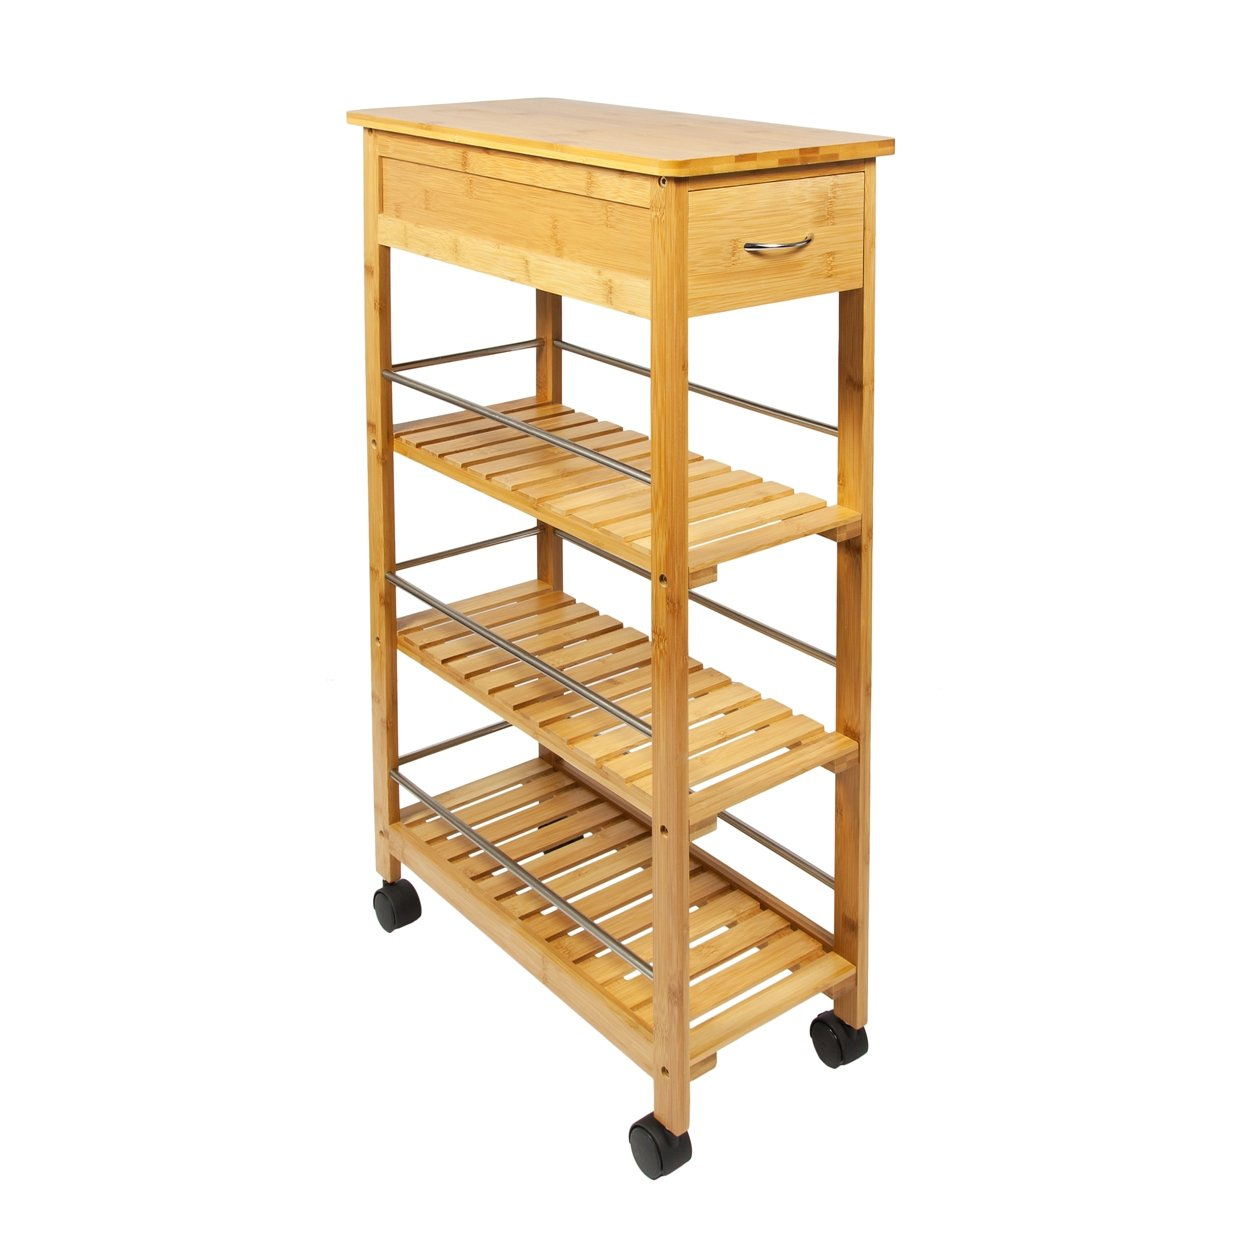 WoodLuv Slimline Space SAVER Bamboo Kitchen Islands Storage Trolley Cart Bamboo Natural Amazon.co.uk Kitchen u0026 Home  sc 1 st  Amazon UK & WoodLuv Slimline Space SAVER Bamboo Kitchen Islands Storage Trolley ...